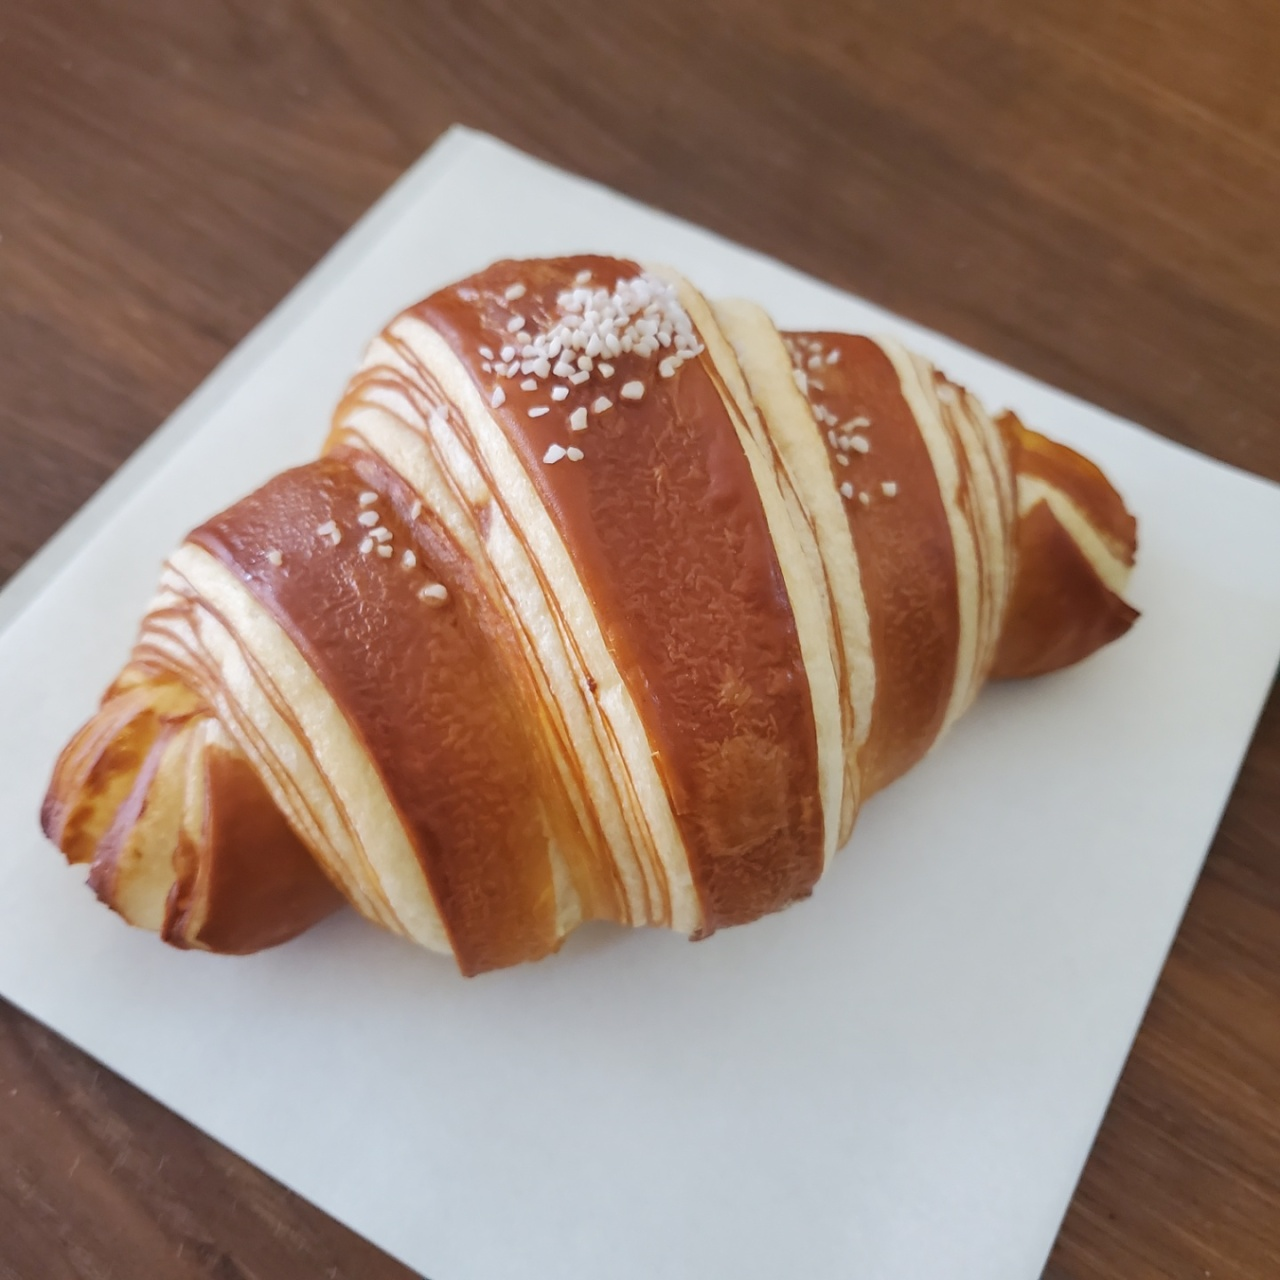 To nab one of Artisan Croissant Bukchon's laugencroissants, it is wise to visit before 2 p.m. to 4 p.m., says head chef Kim Jin-mo. (Photo credit: Artisan Croissant by Artisan Bakers)